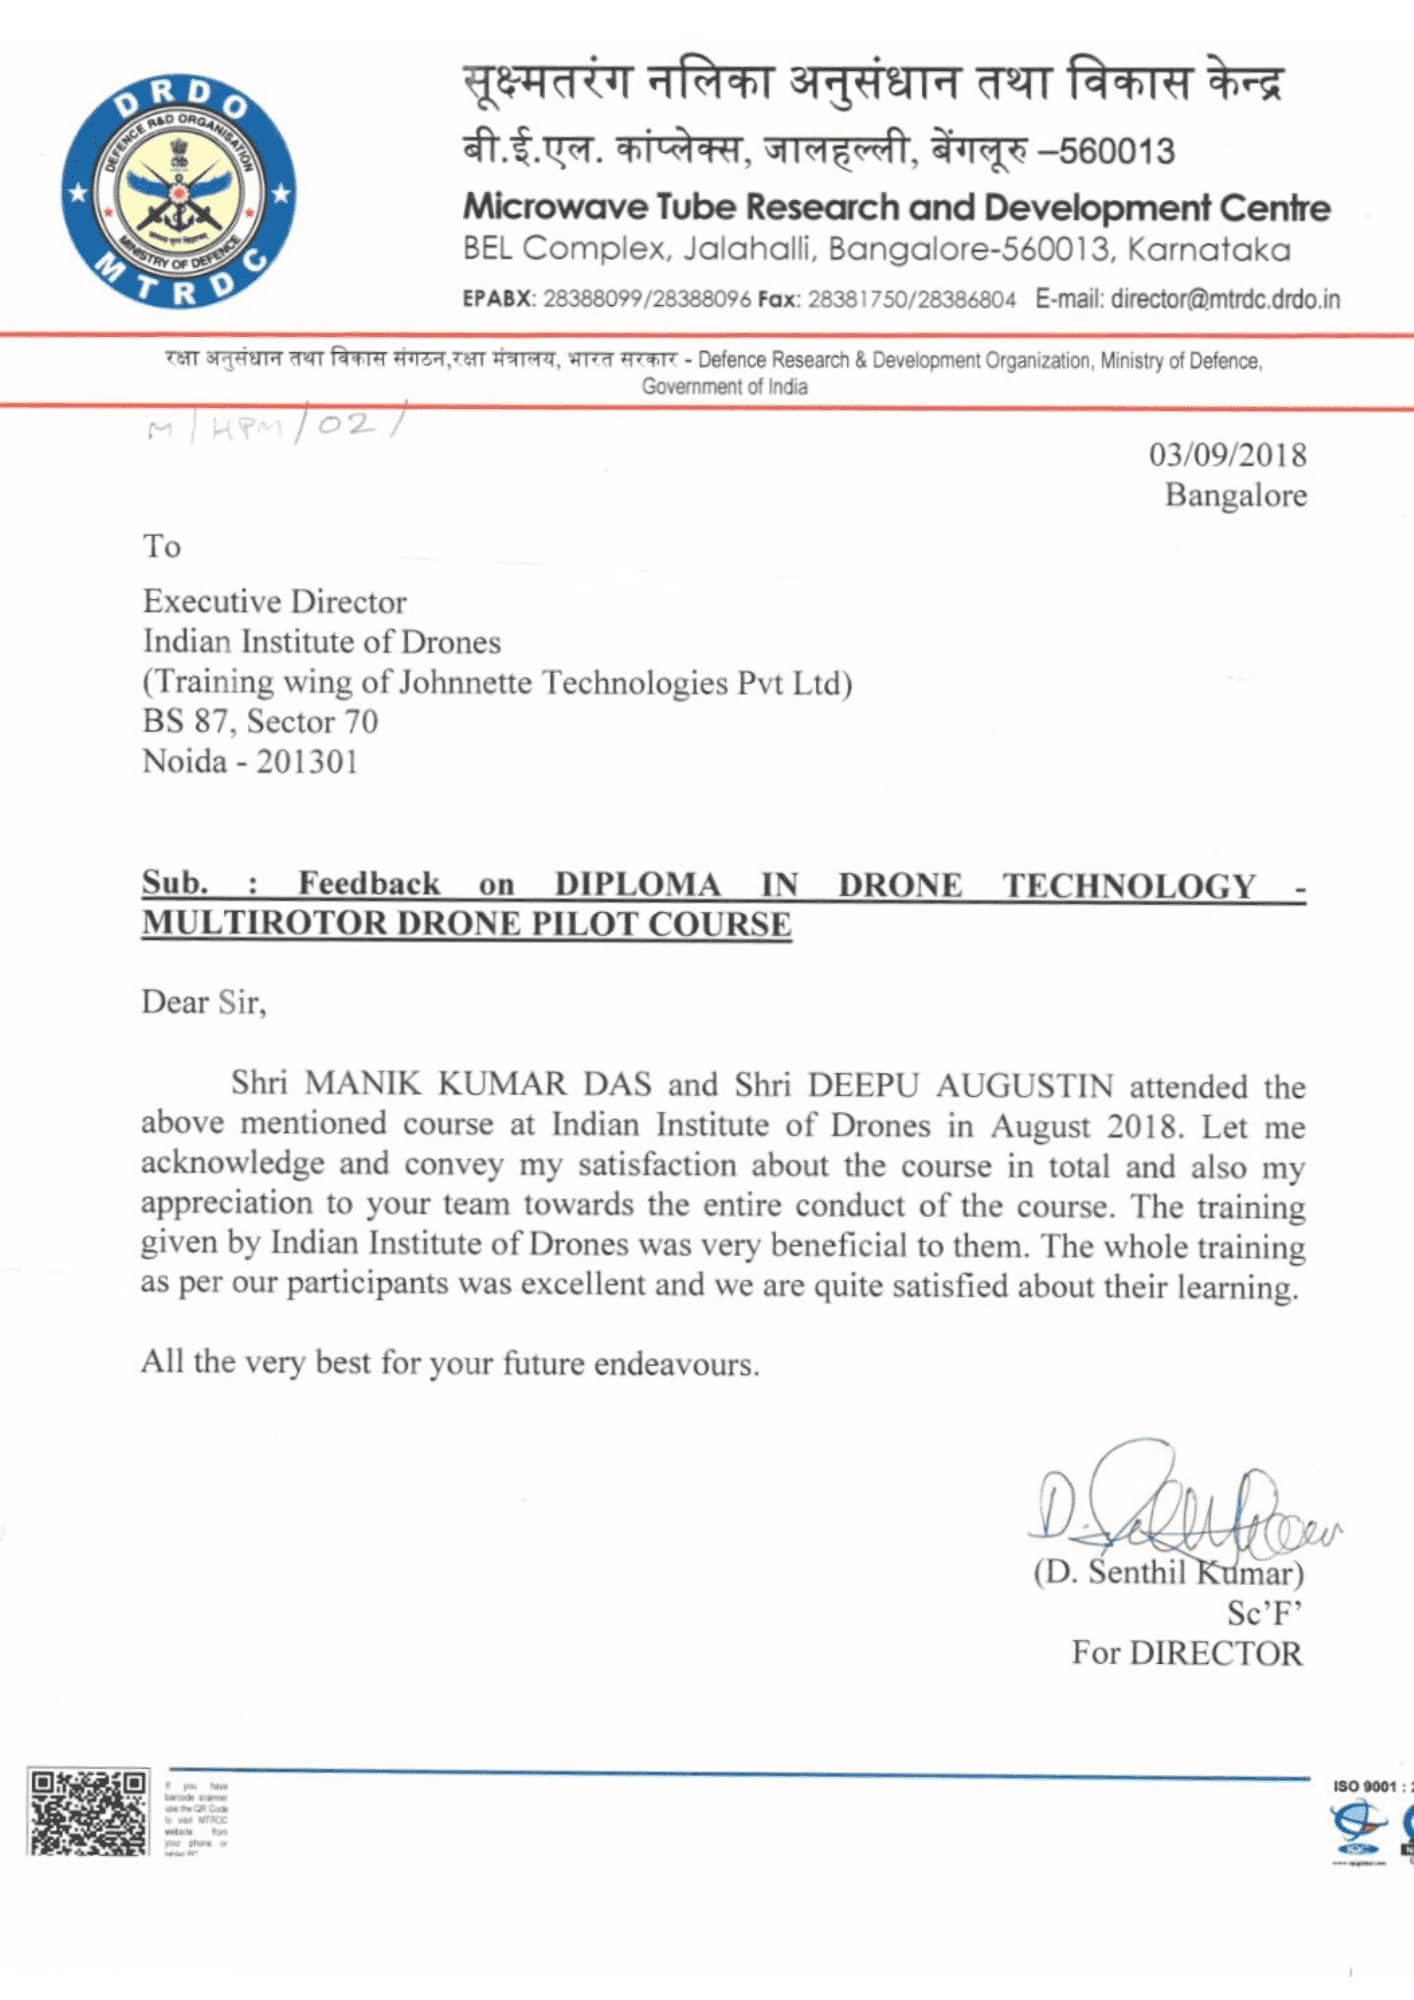 Satisfactory Letter for Drone Training Received from MTRC, DRDO